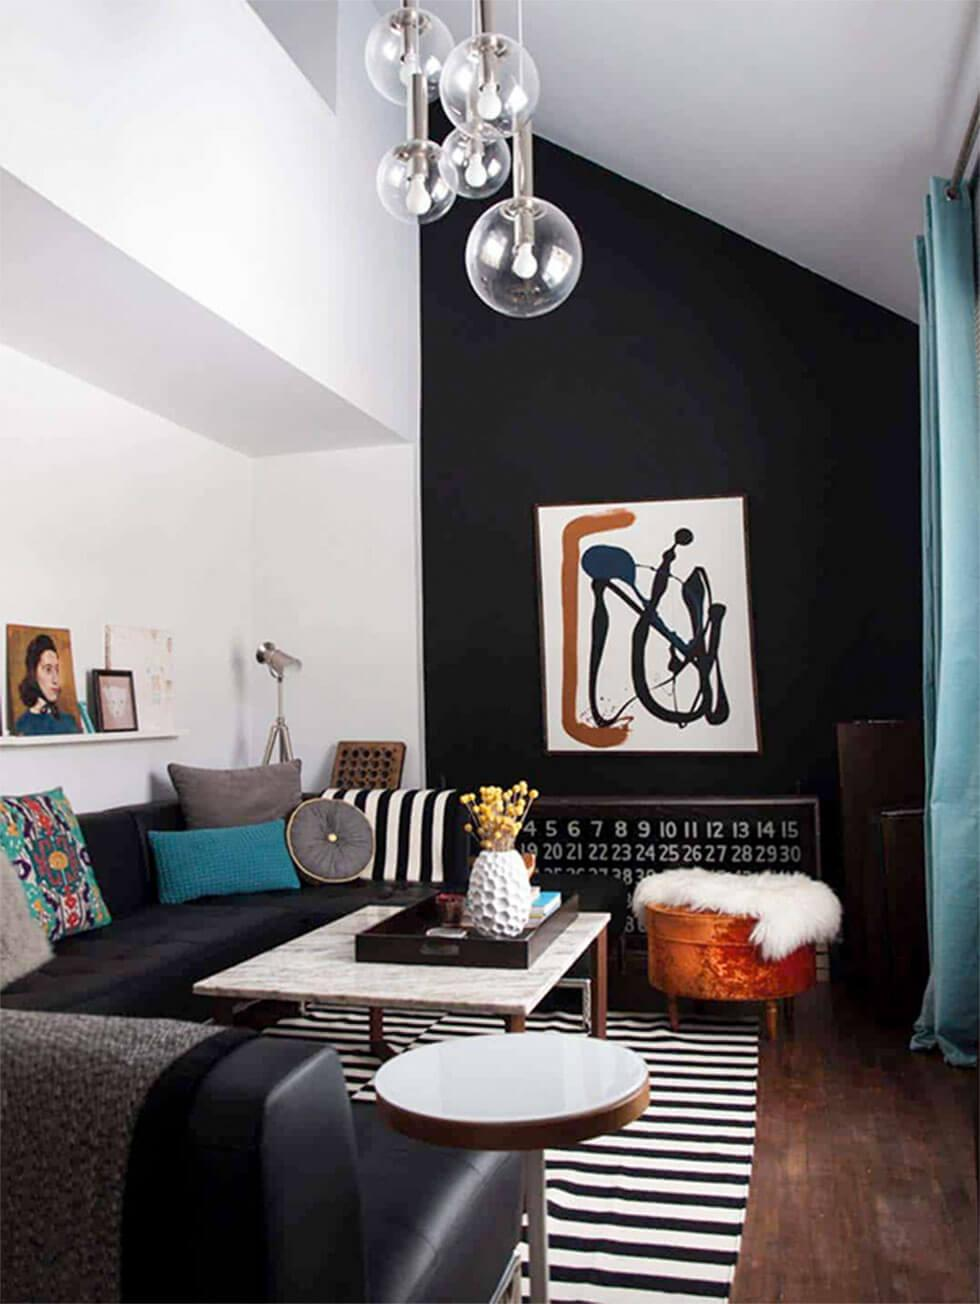 Black and white colour blocked walls and striped accessories